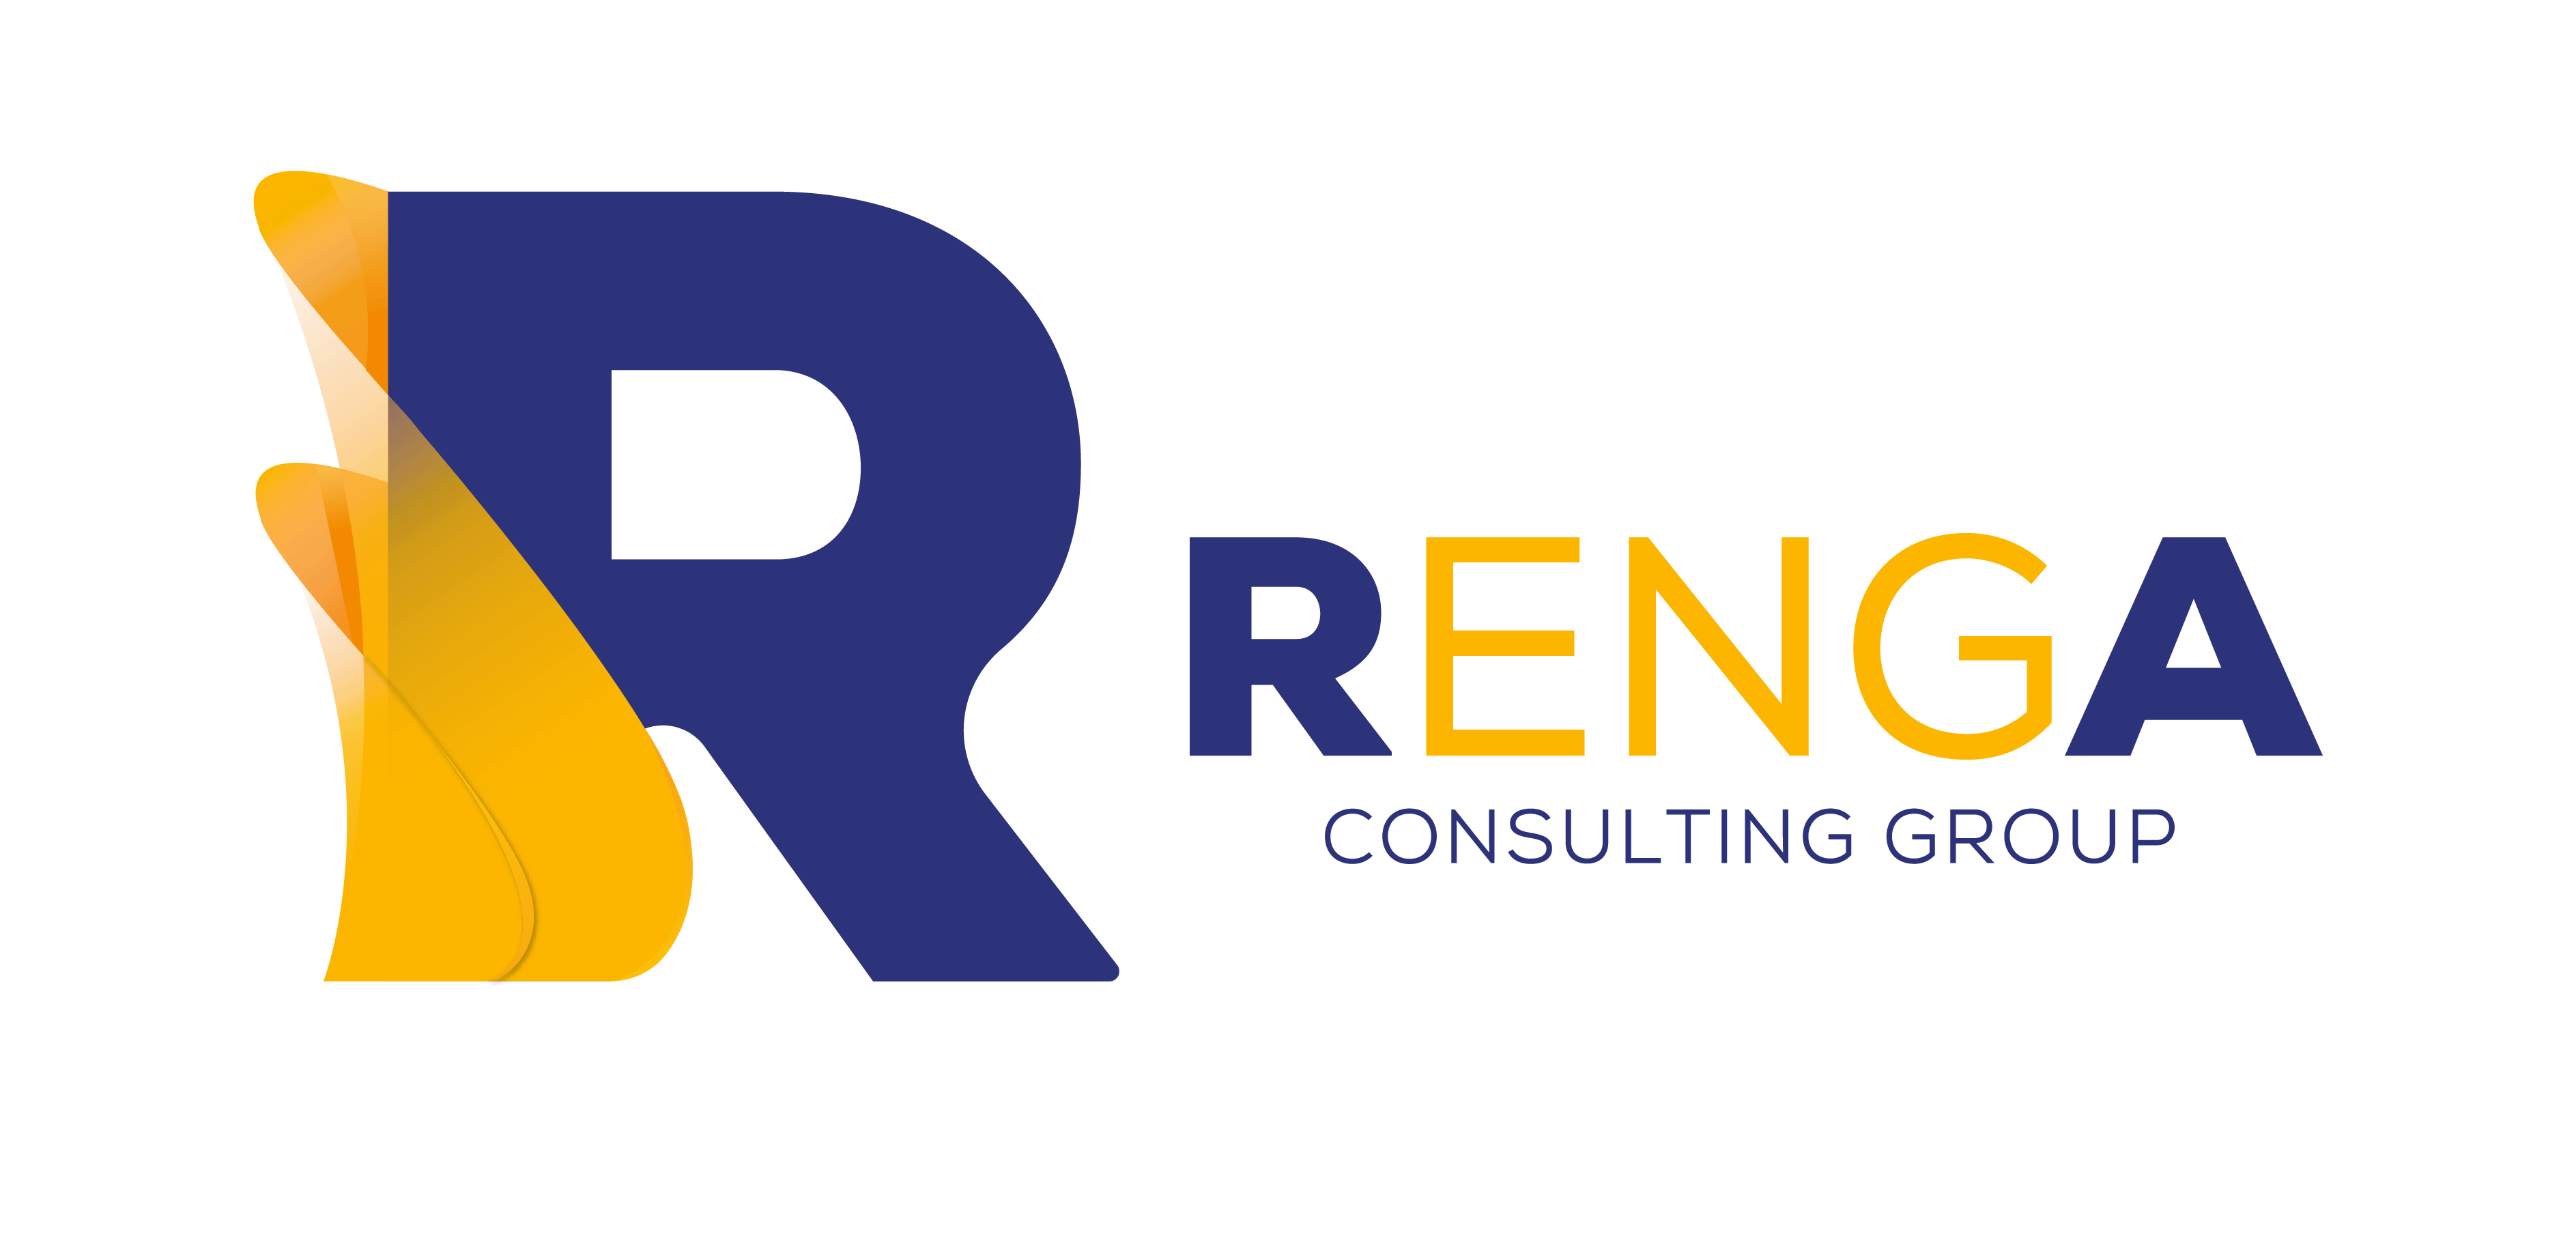 https://renga.com.co/wp-content/uploads/2020/05/RENGA-CONSULTING-GROUP.png